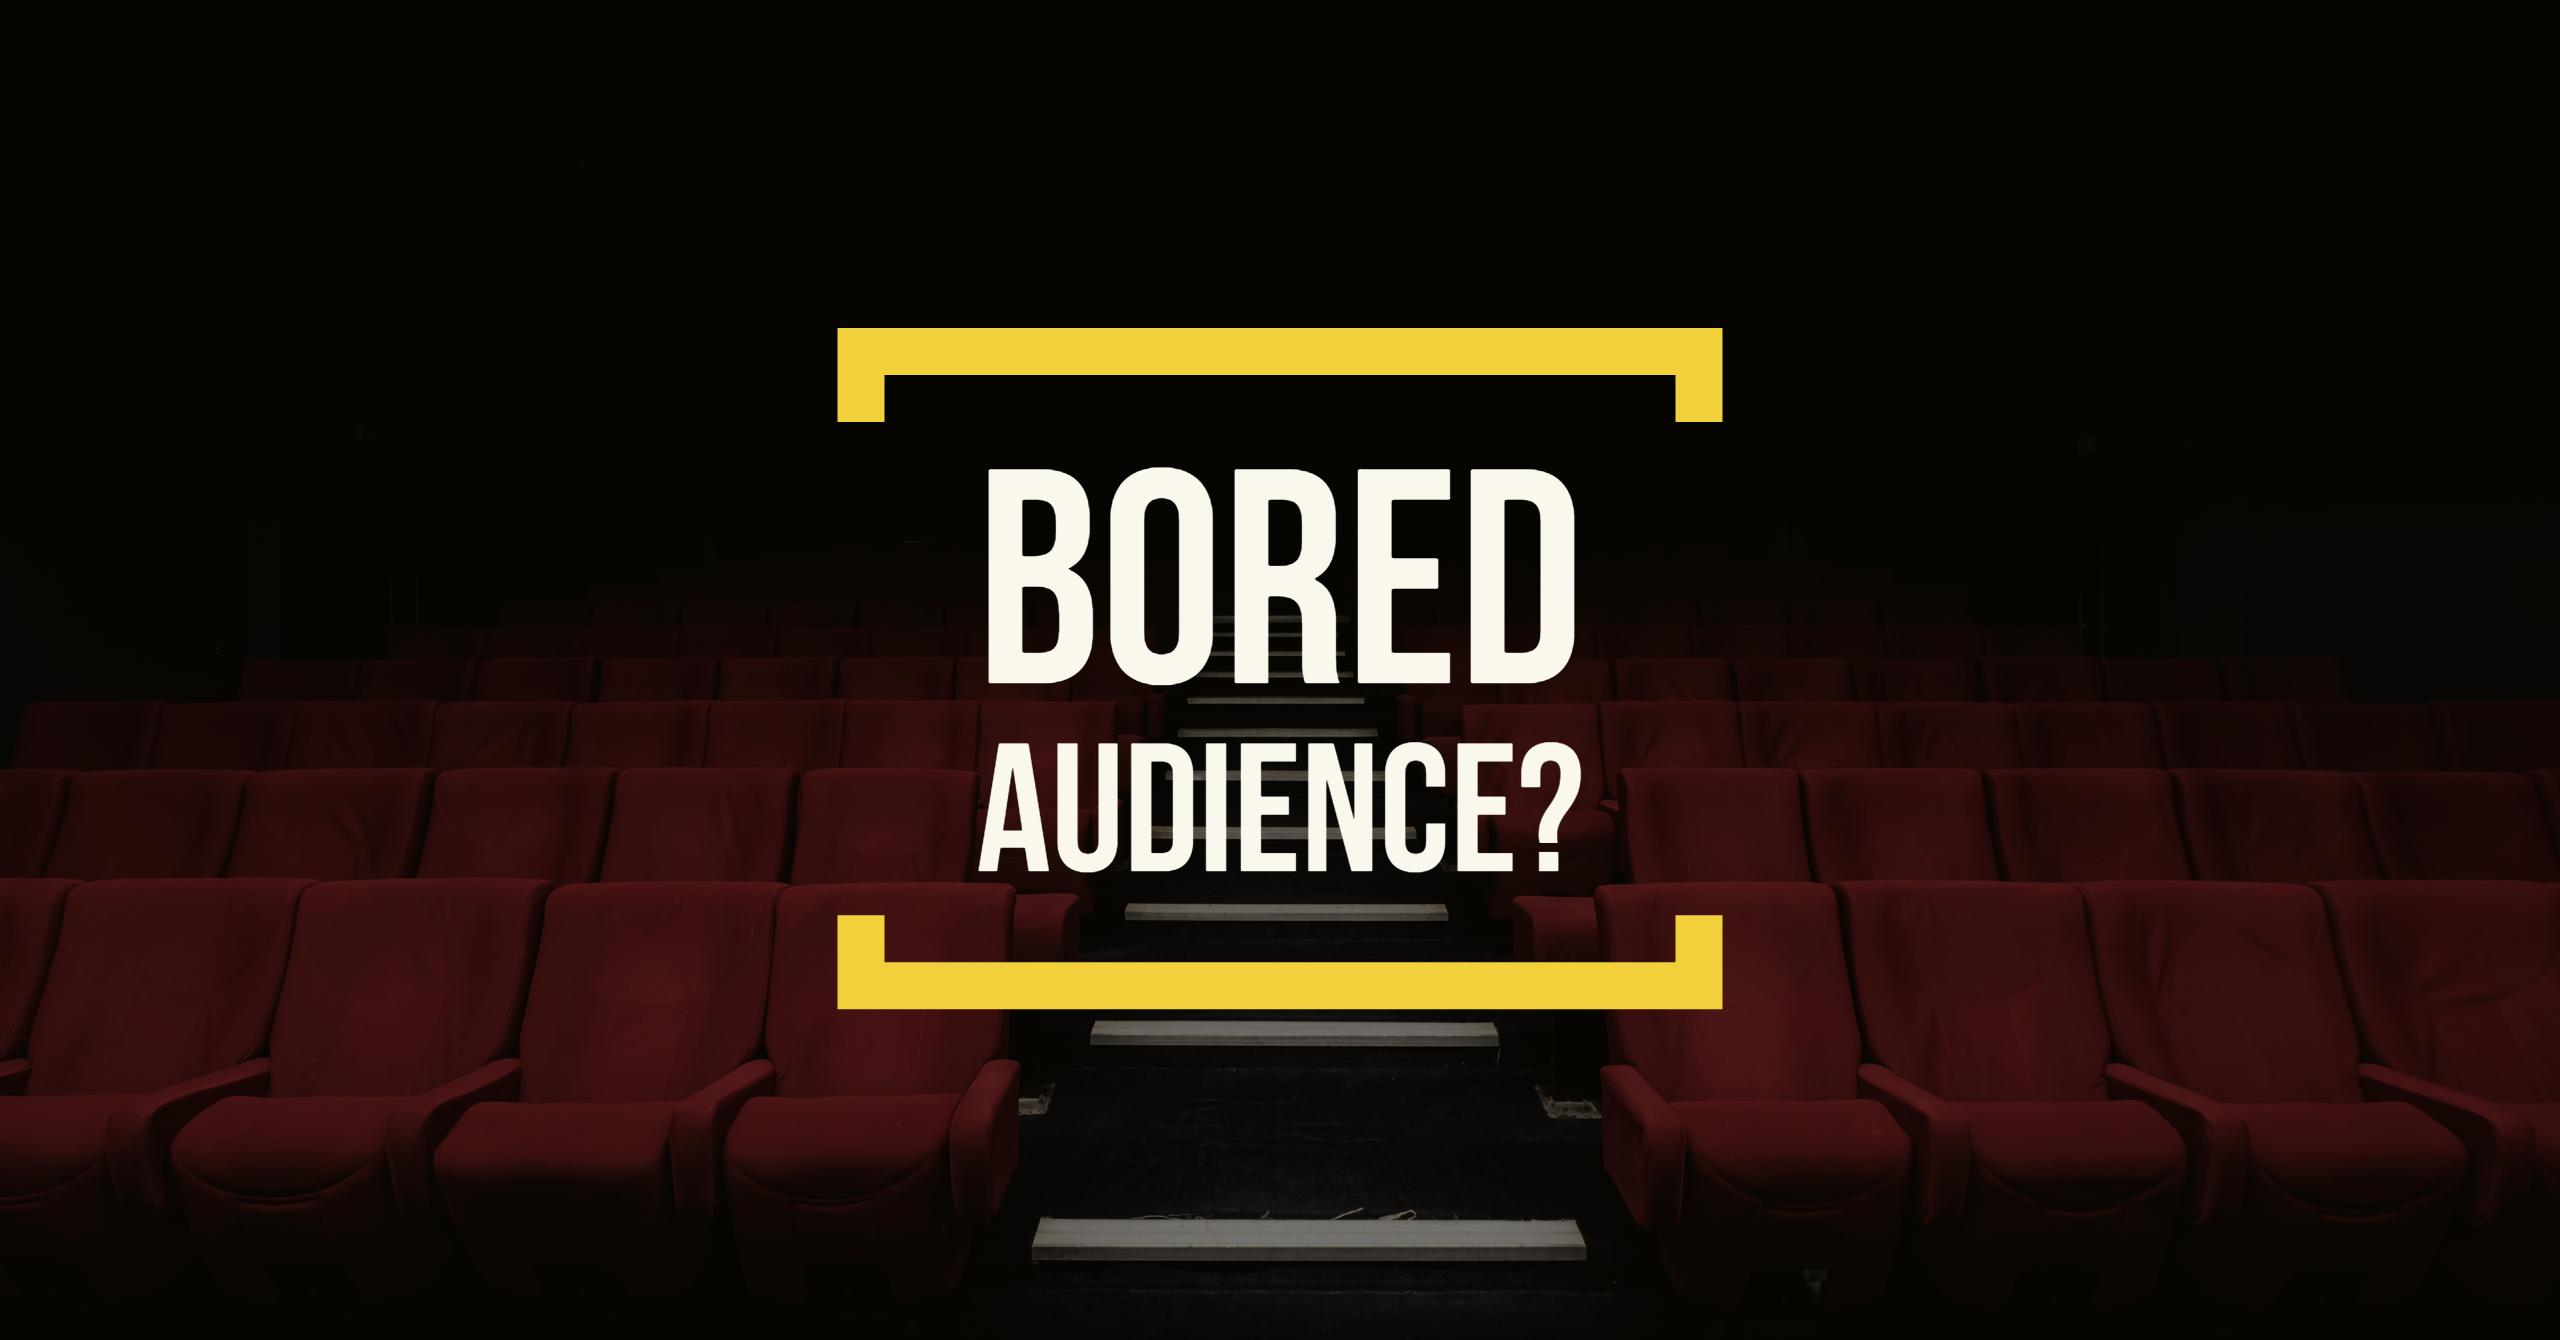 Bored audience Shorten your video!